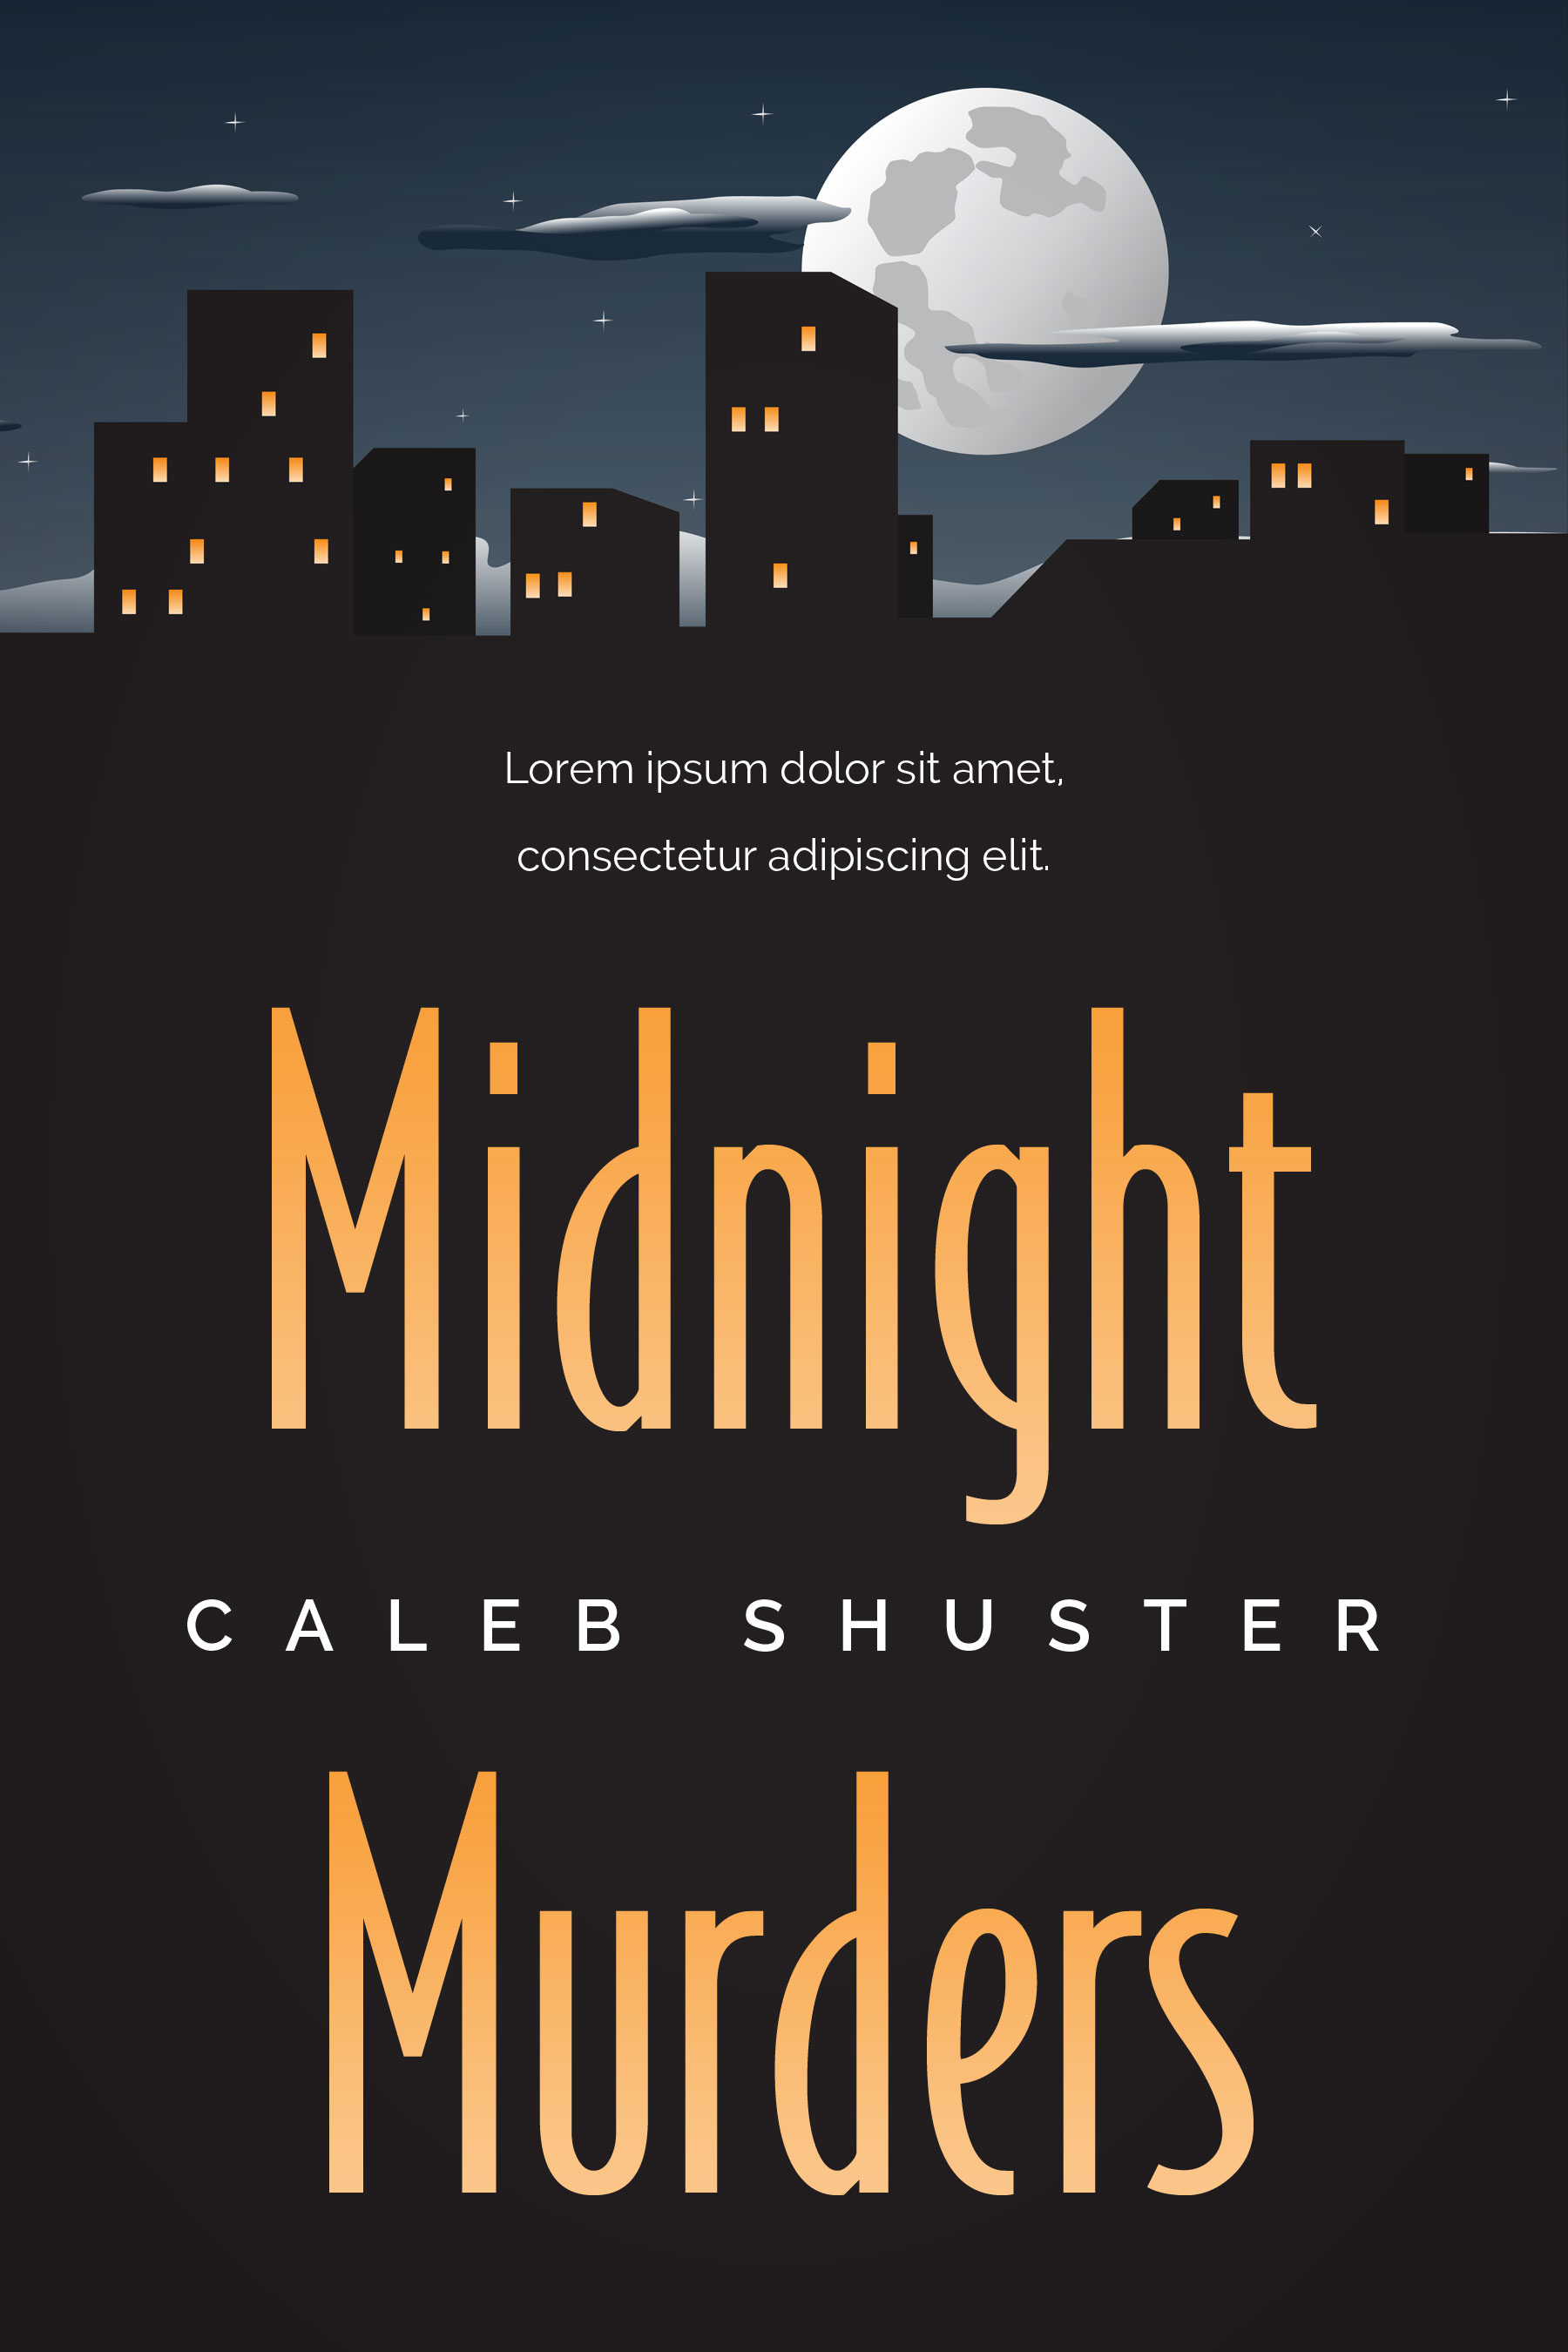 Mystery Book Cover Design : Midnight murders cozy mystery book cover for sale